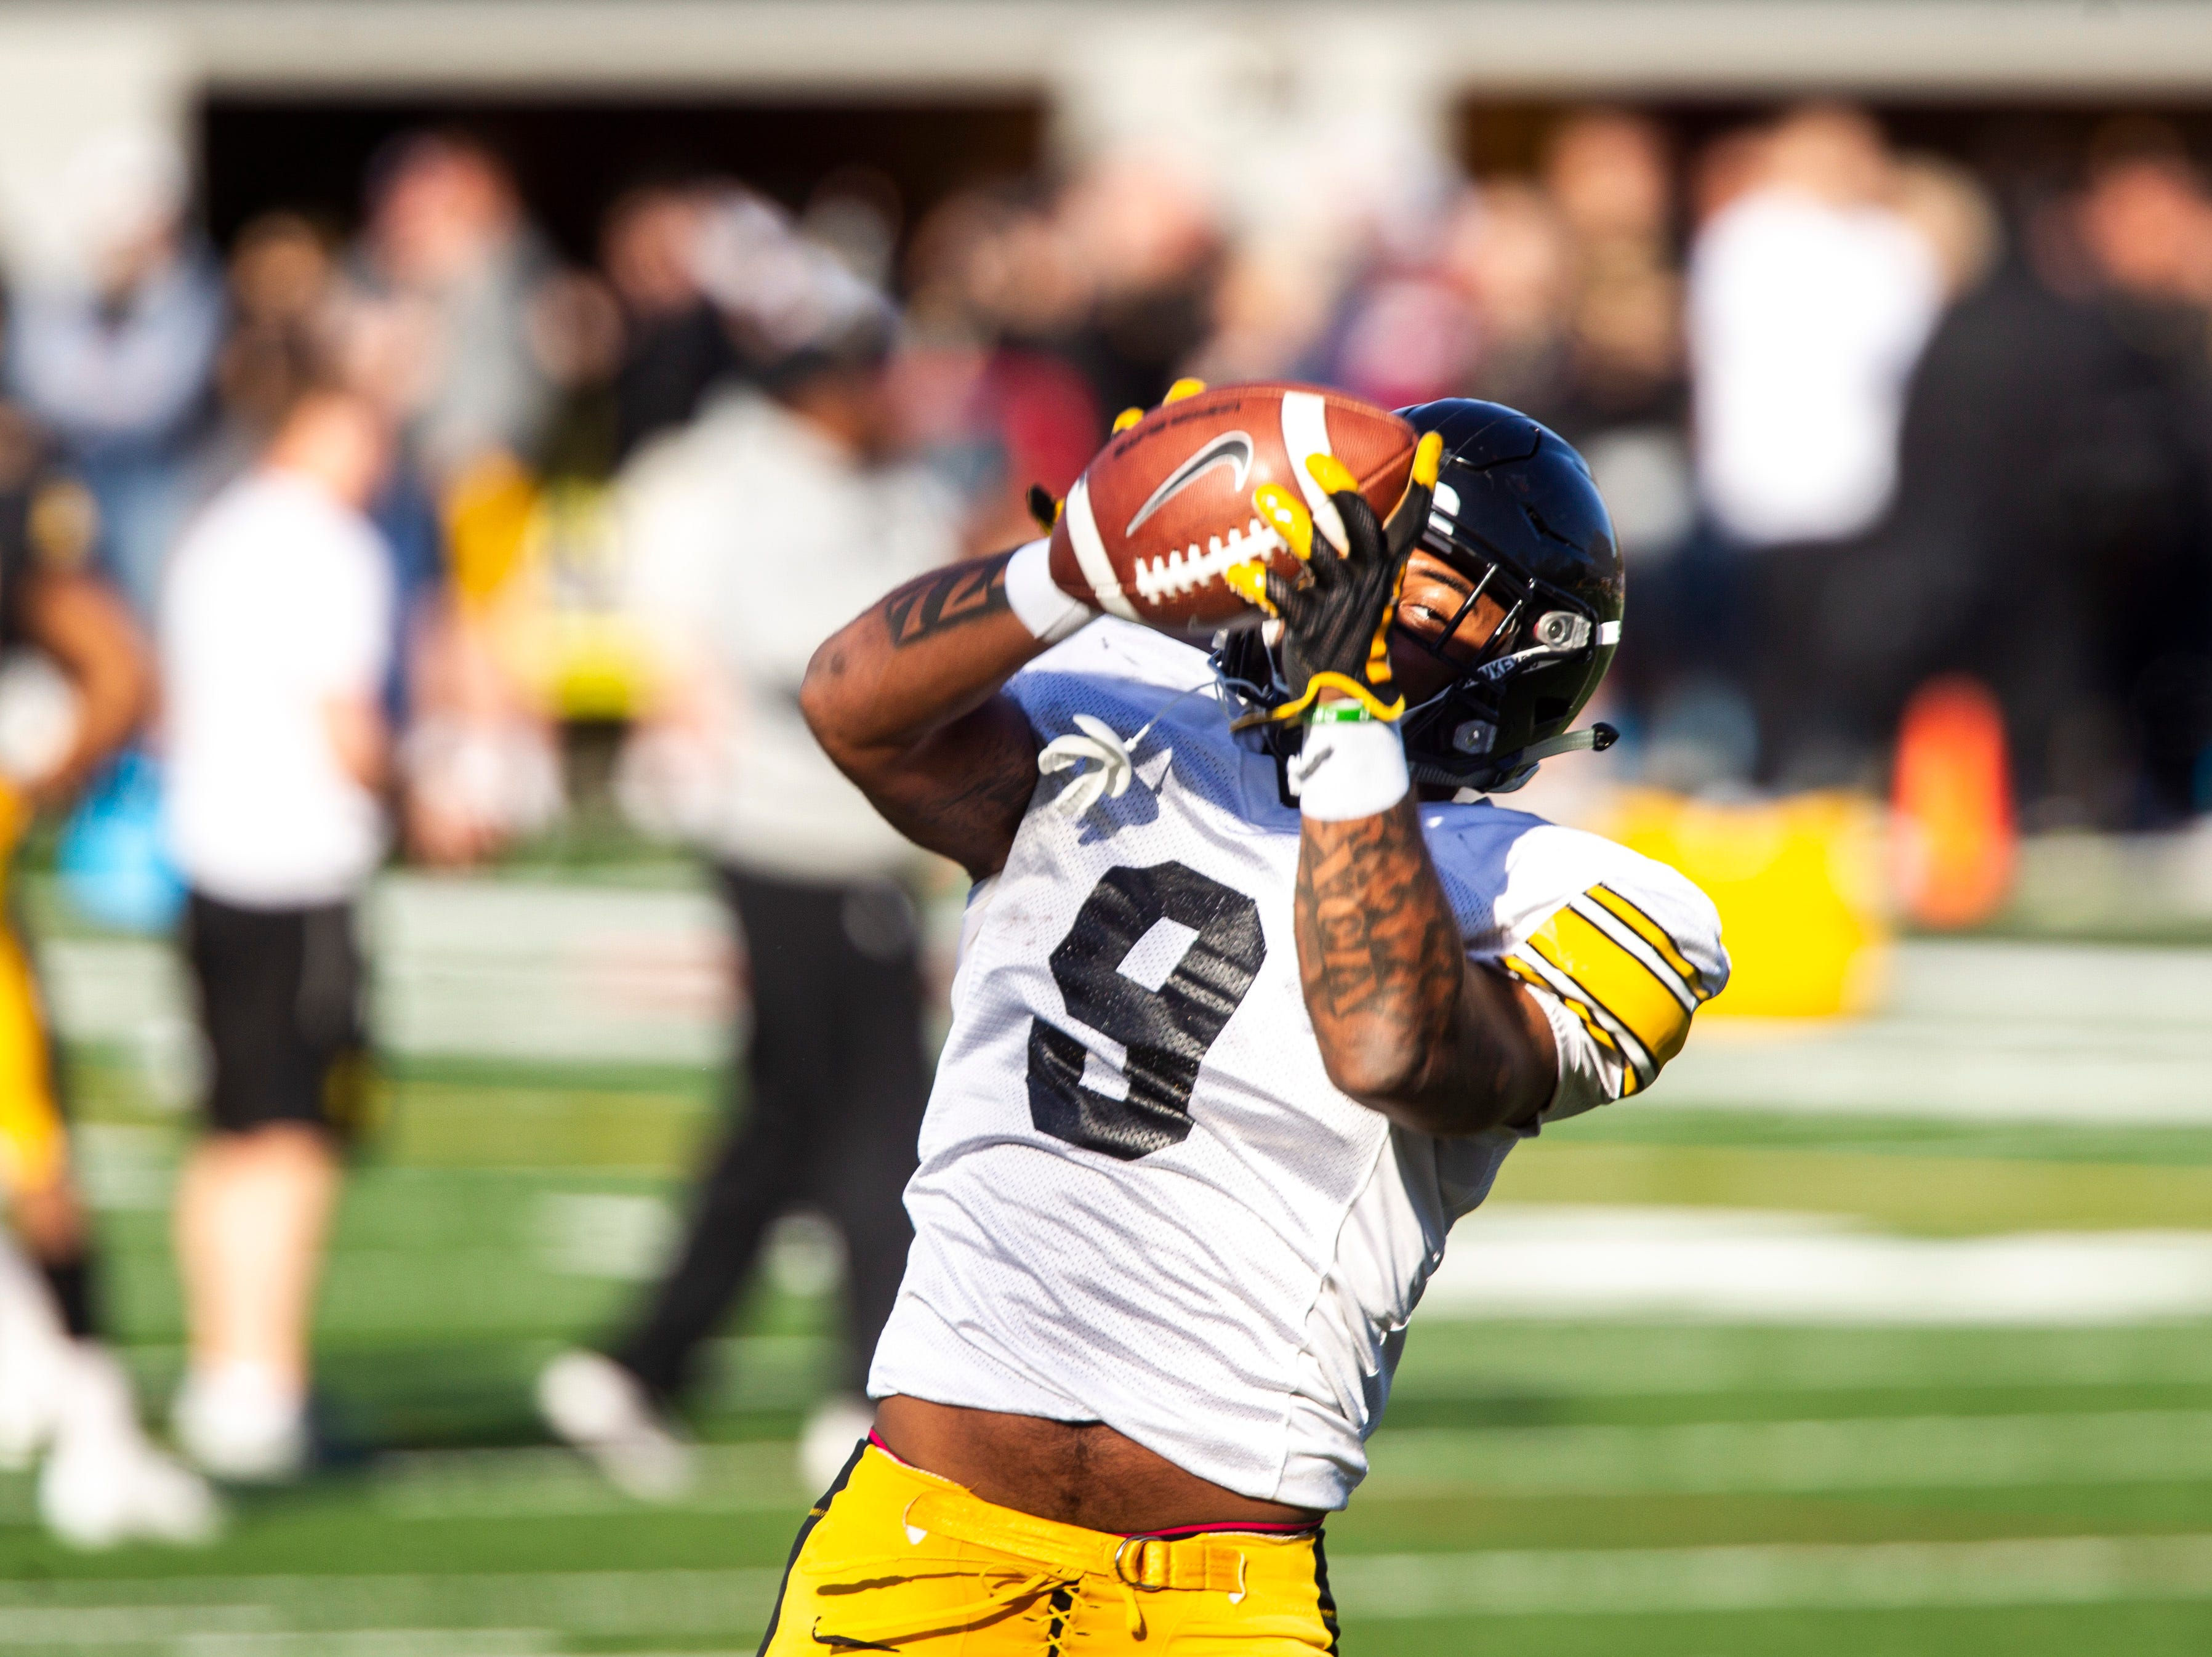 Iowa defensive back Geno Stone (9) catches a pass while running a drill during the final spring football practice, Friday, April 26, 2019, at the University of Iowa outdoor practice facility in Iowa City, Iowa.